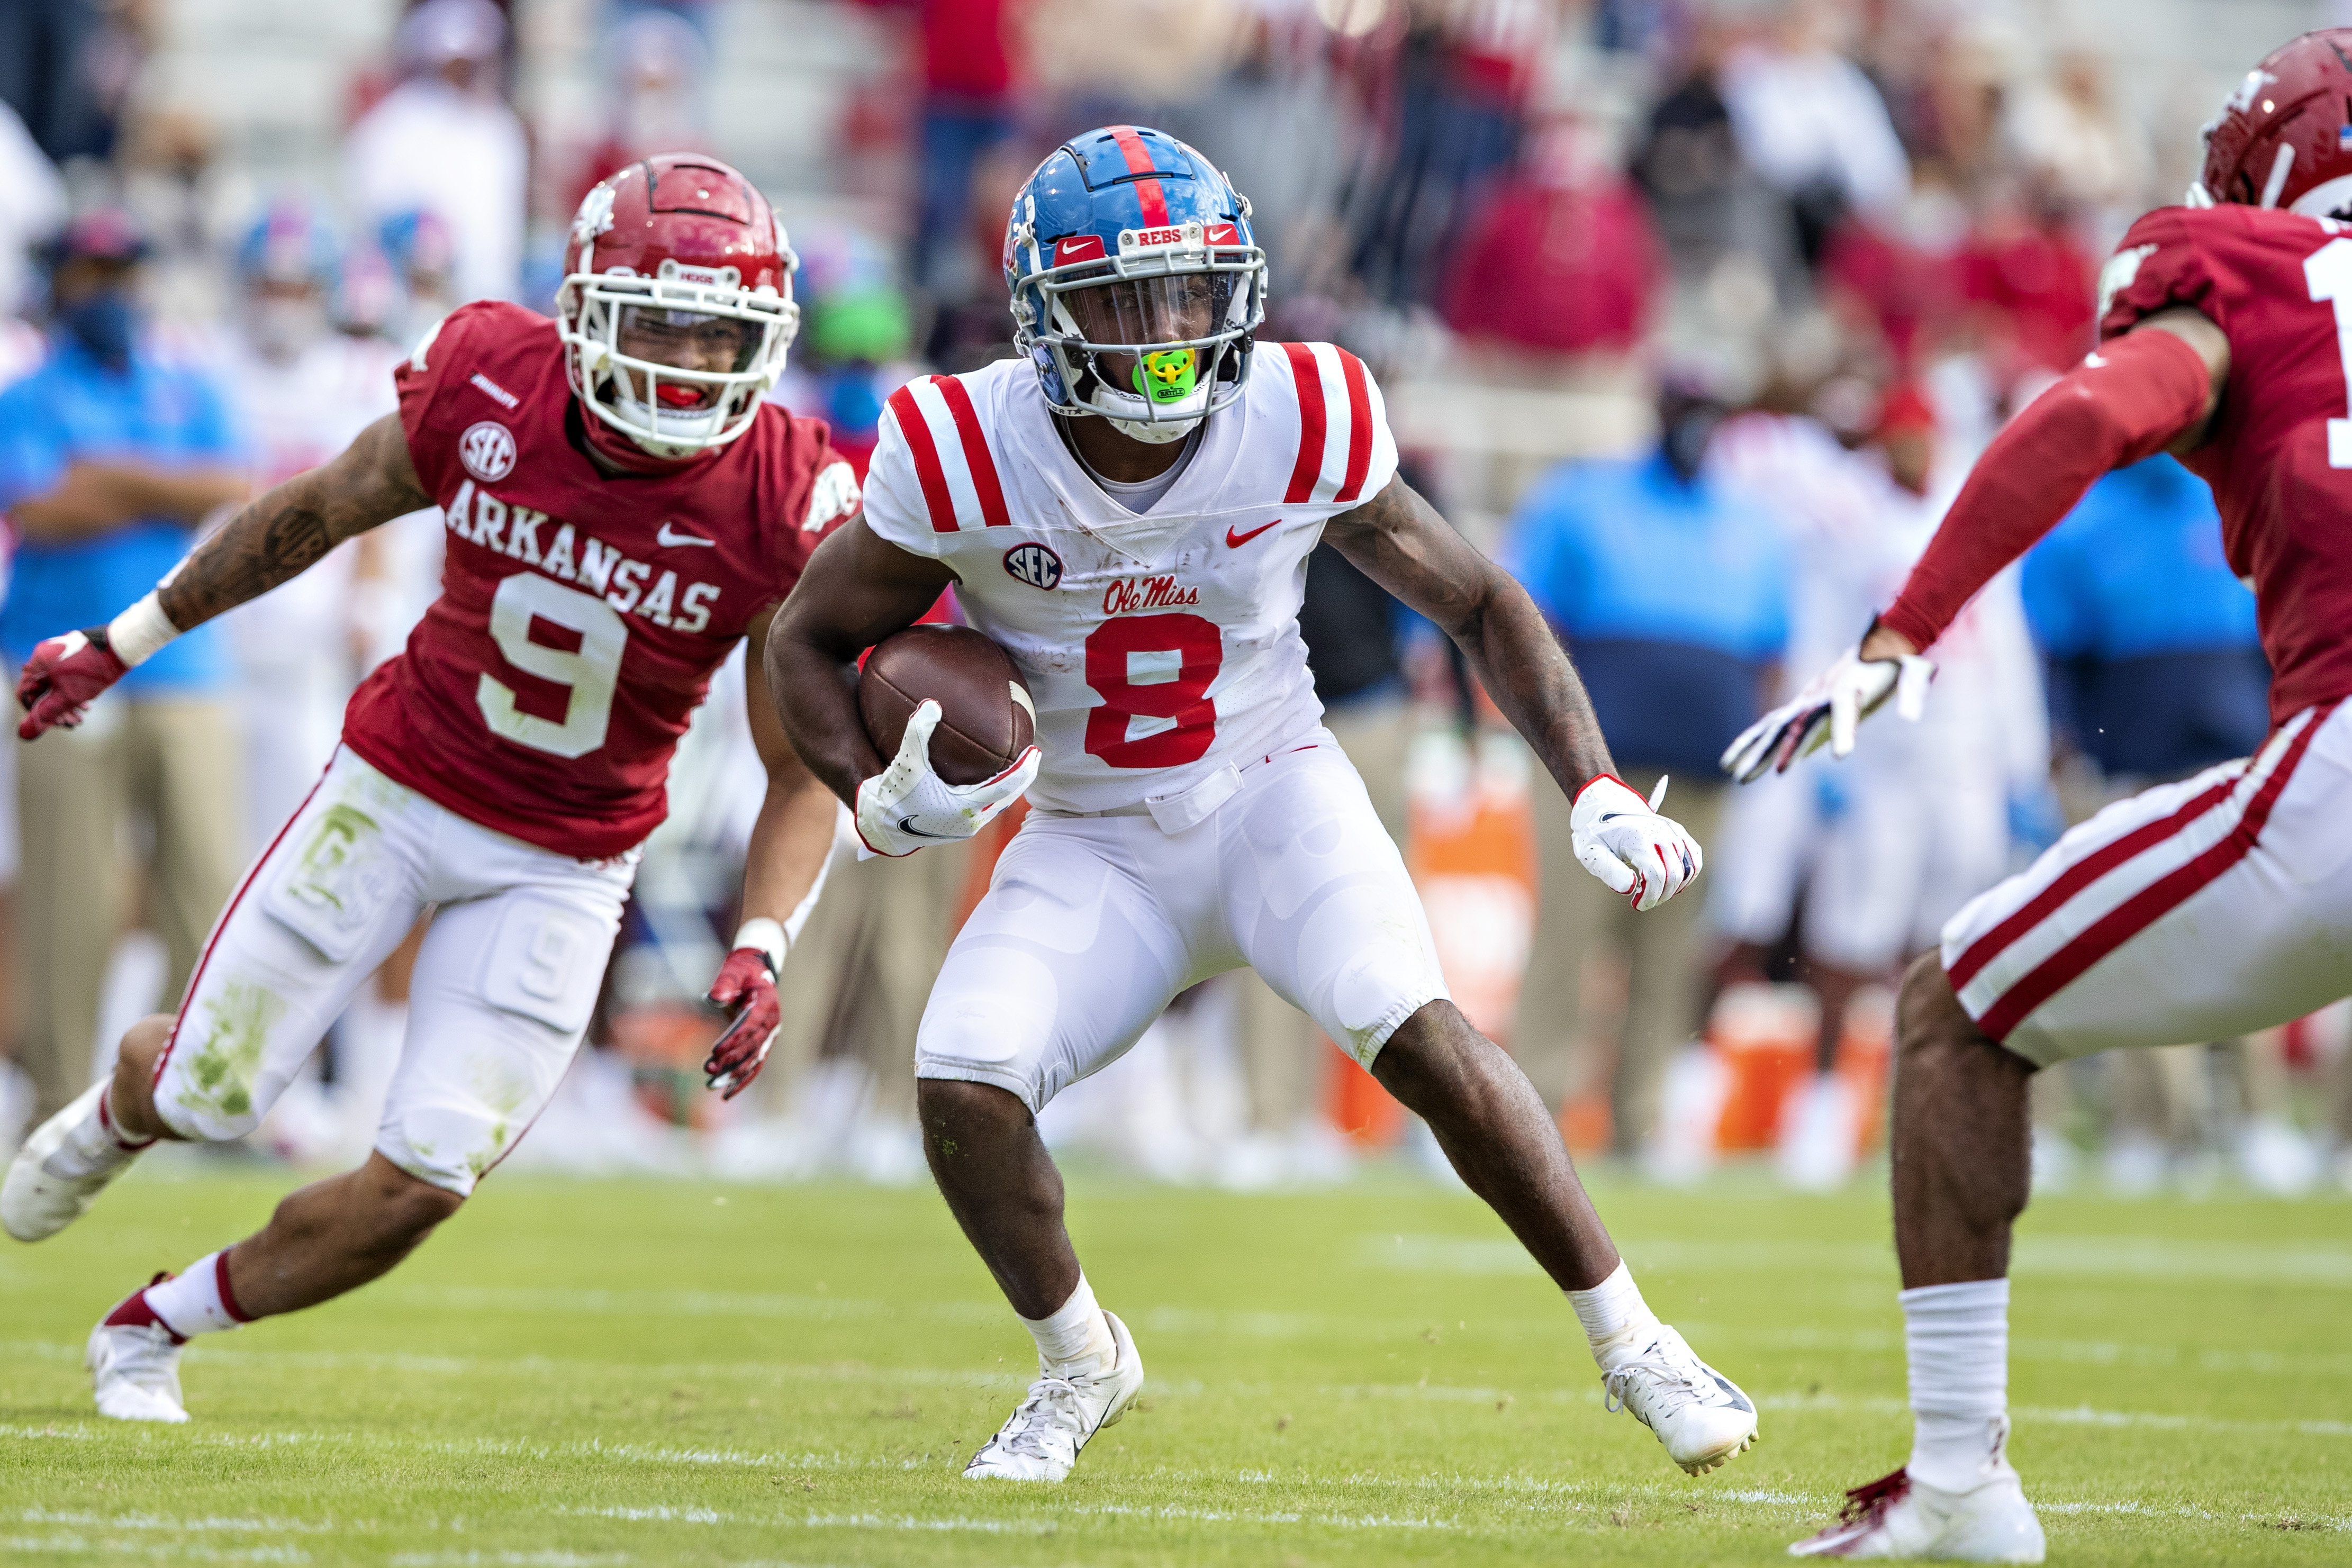 Elijah Moore #8 of the Mississippi Rebels looks for a place to run in the second half of a game against the Arkansas Razorbacks at Razorback Stadium on October 17, 2020 in Fayetteville, Arkansas.